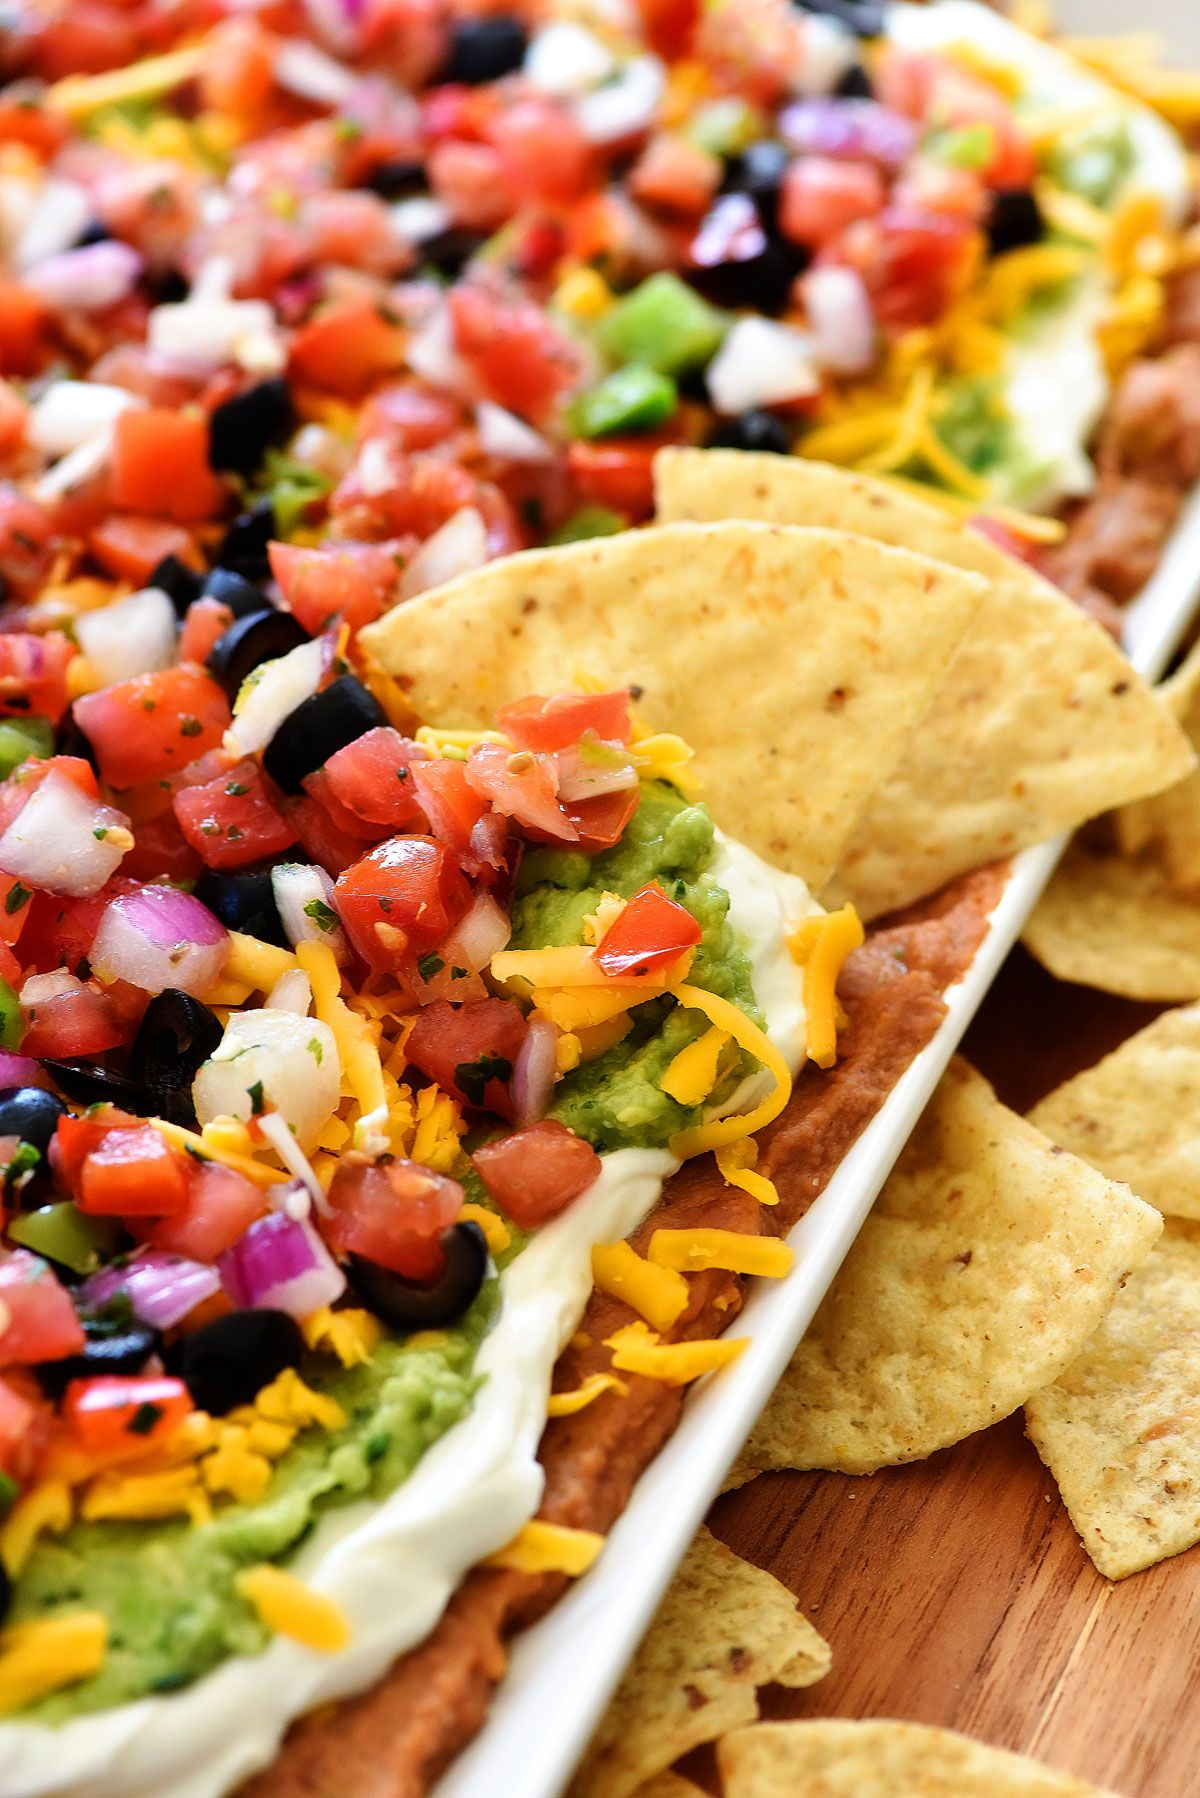 Make this Mexican Layer Dip for your next party or gathering! Just make sure to stock up on extra chips because you'll need them for this amazing dip!